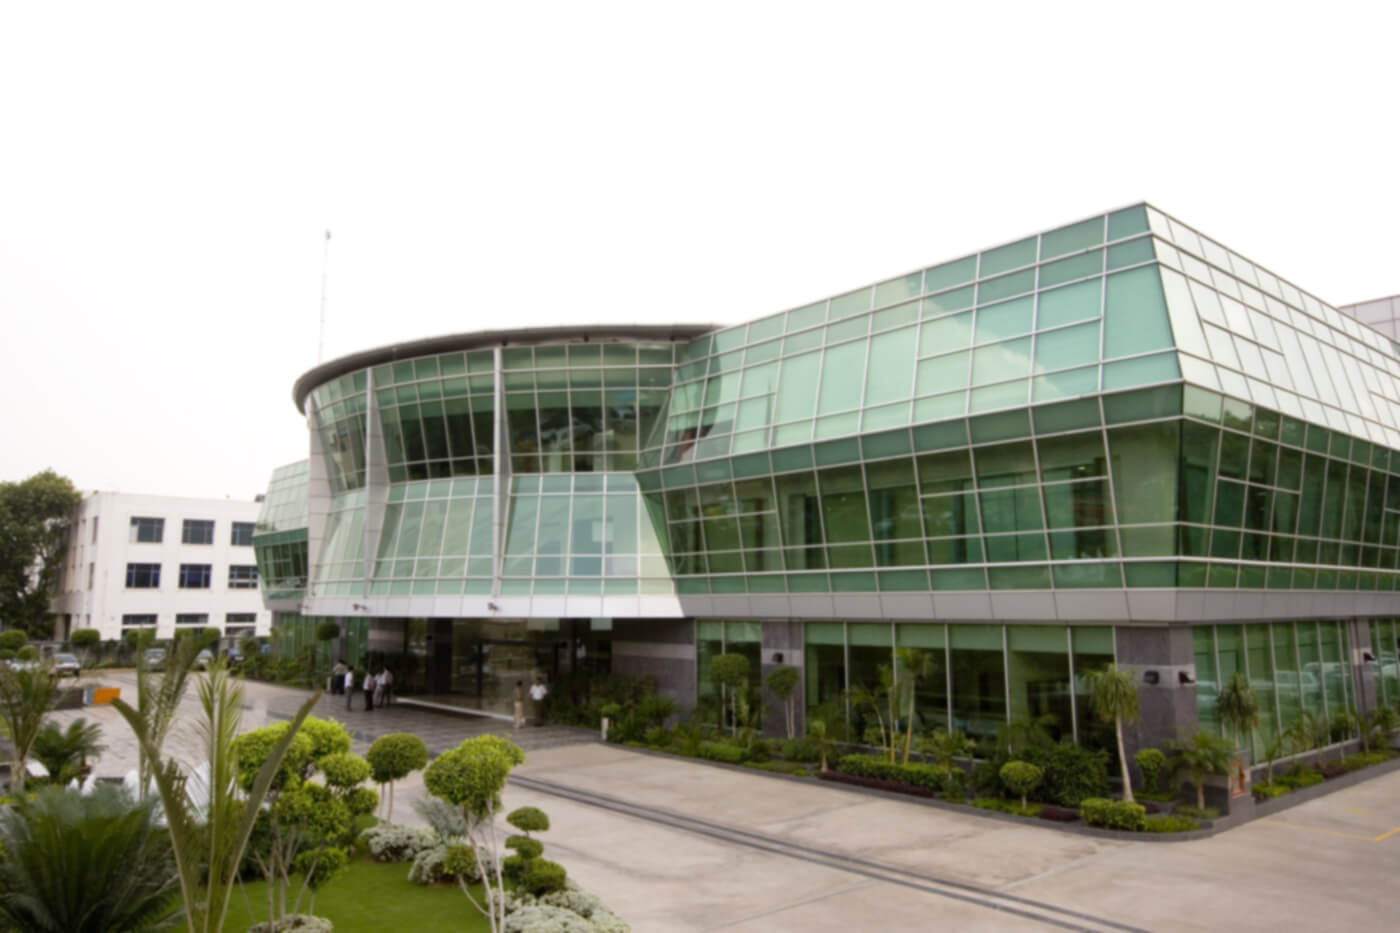 Samsung office building - Original image by Secl, source https://en.wikipedia.org/wiki/Samsung#/media/File:Samsung_Engineering_India_office.jpg